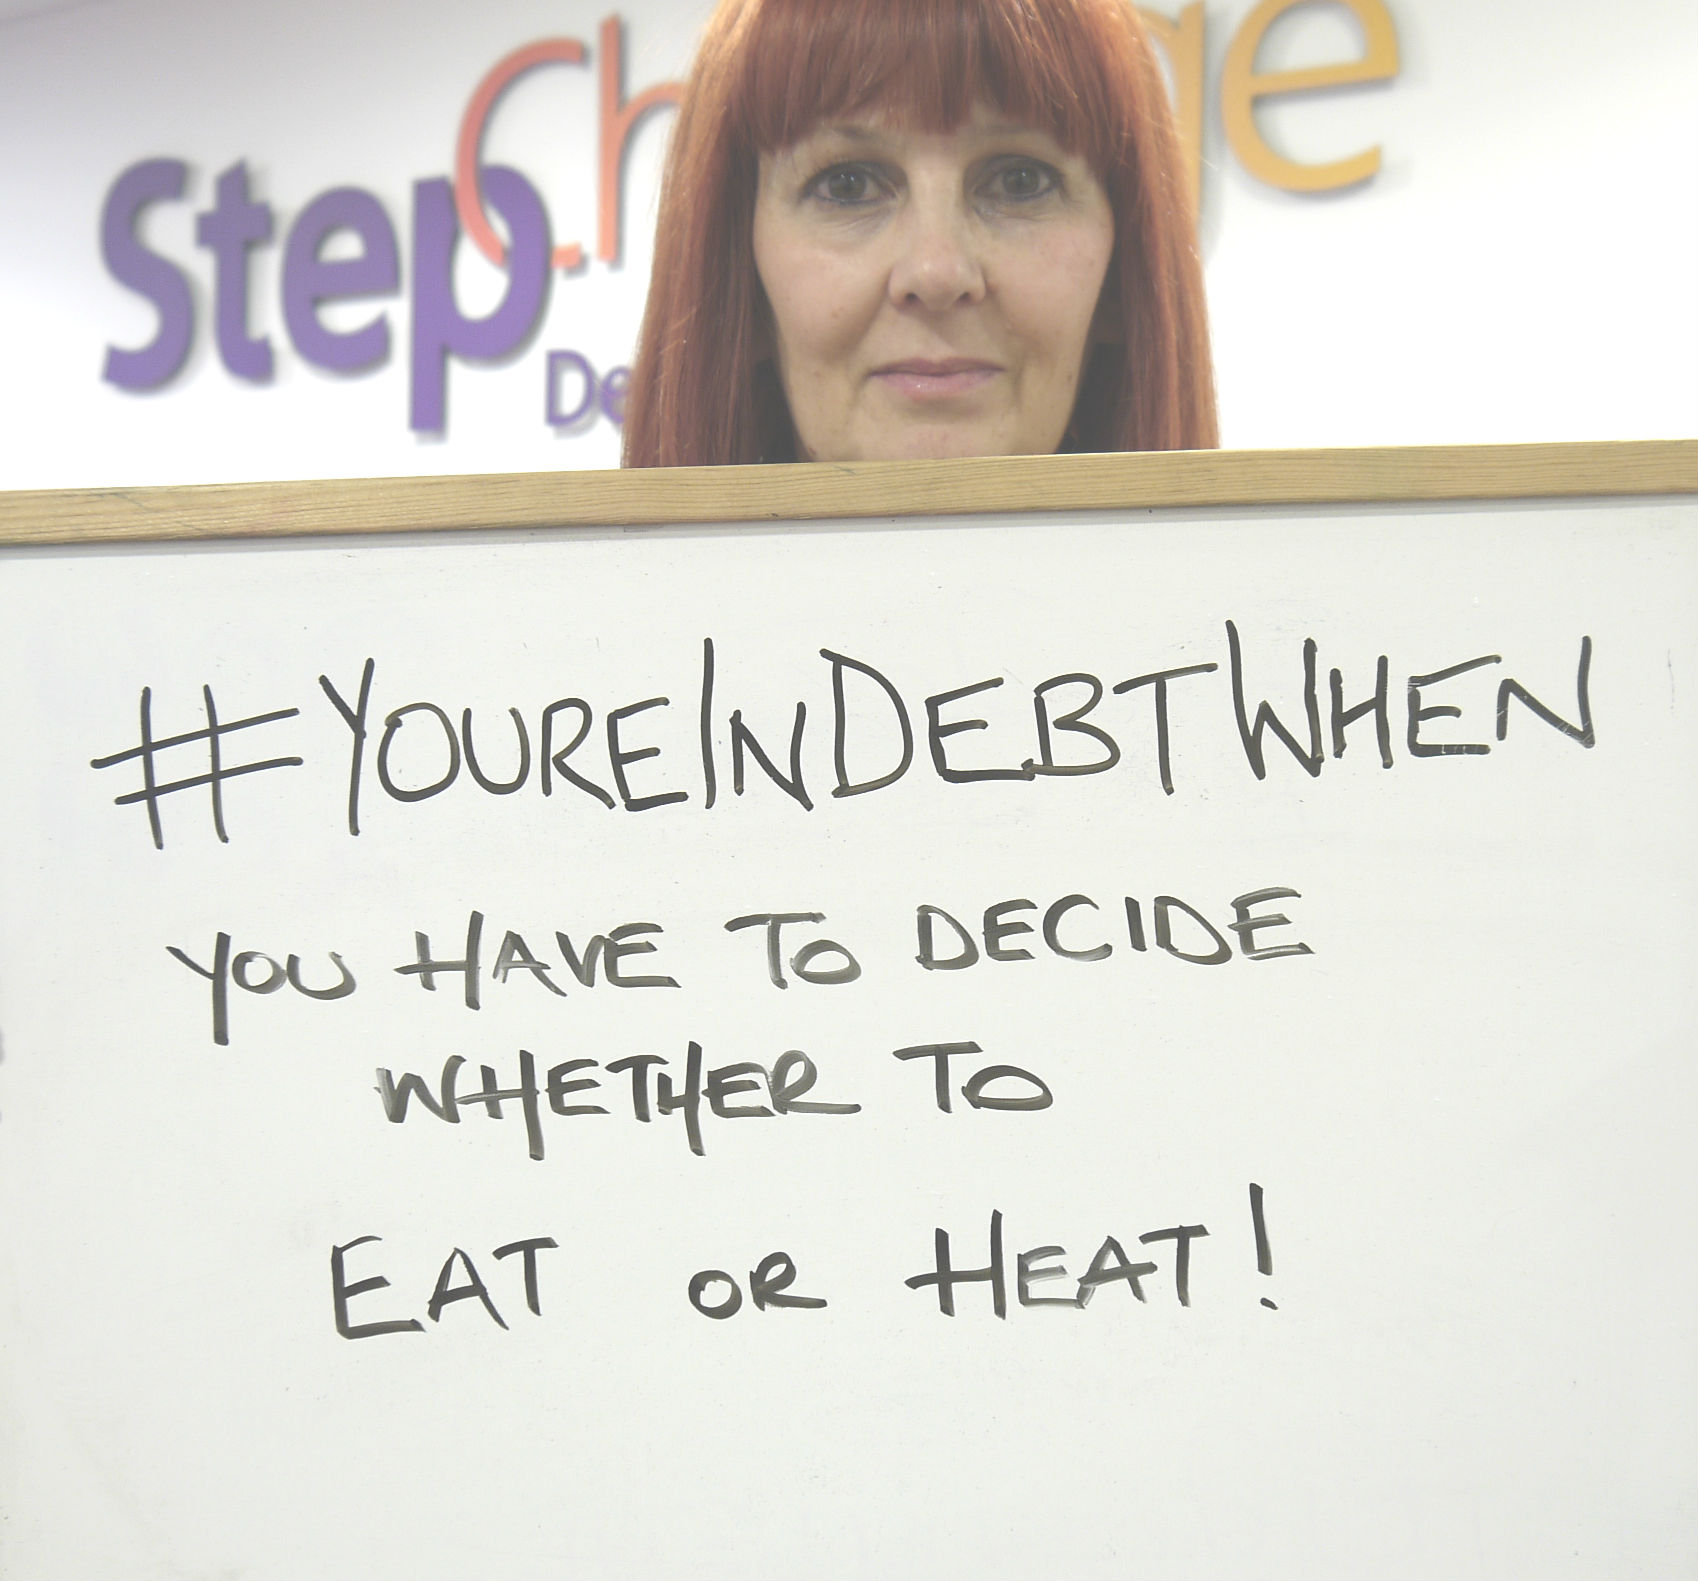 Deciding between eating and heating is a danger sign of debt